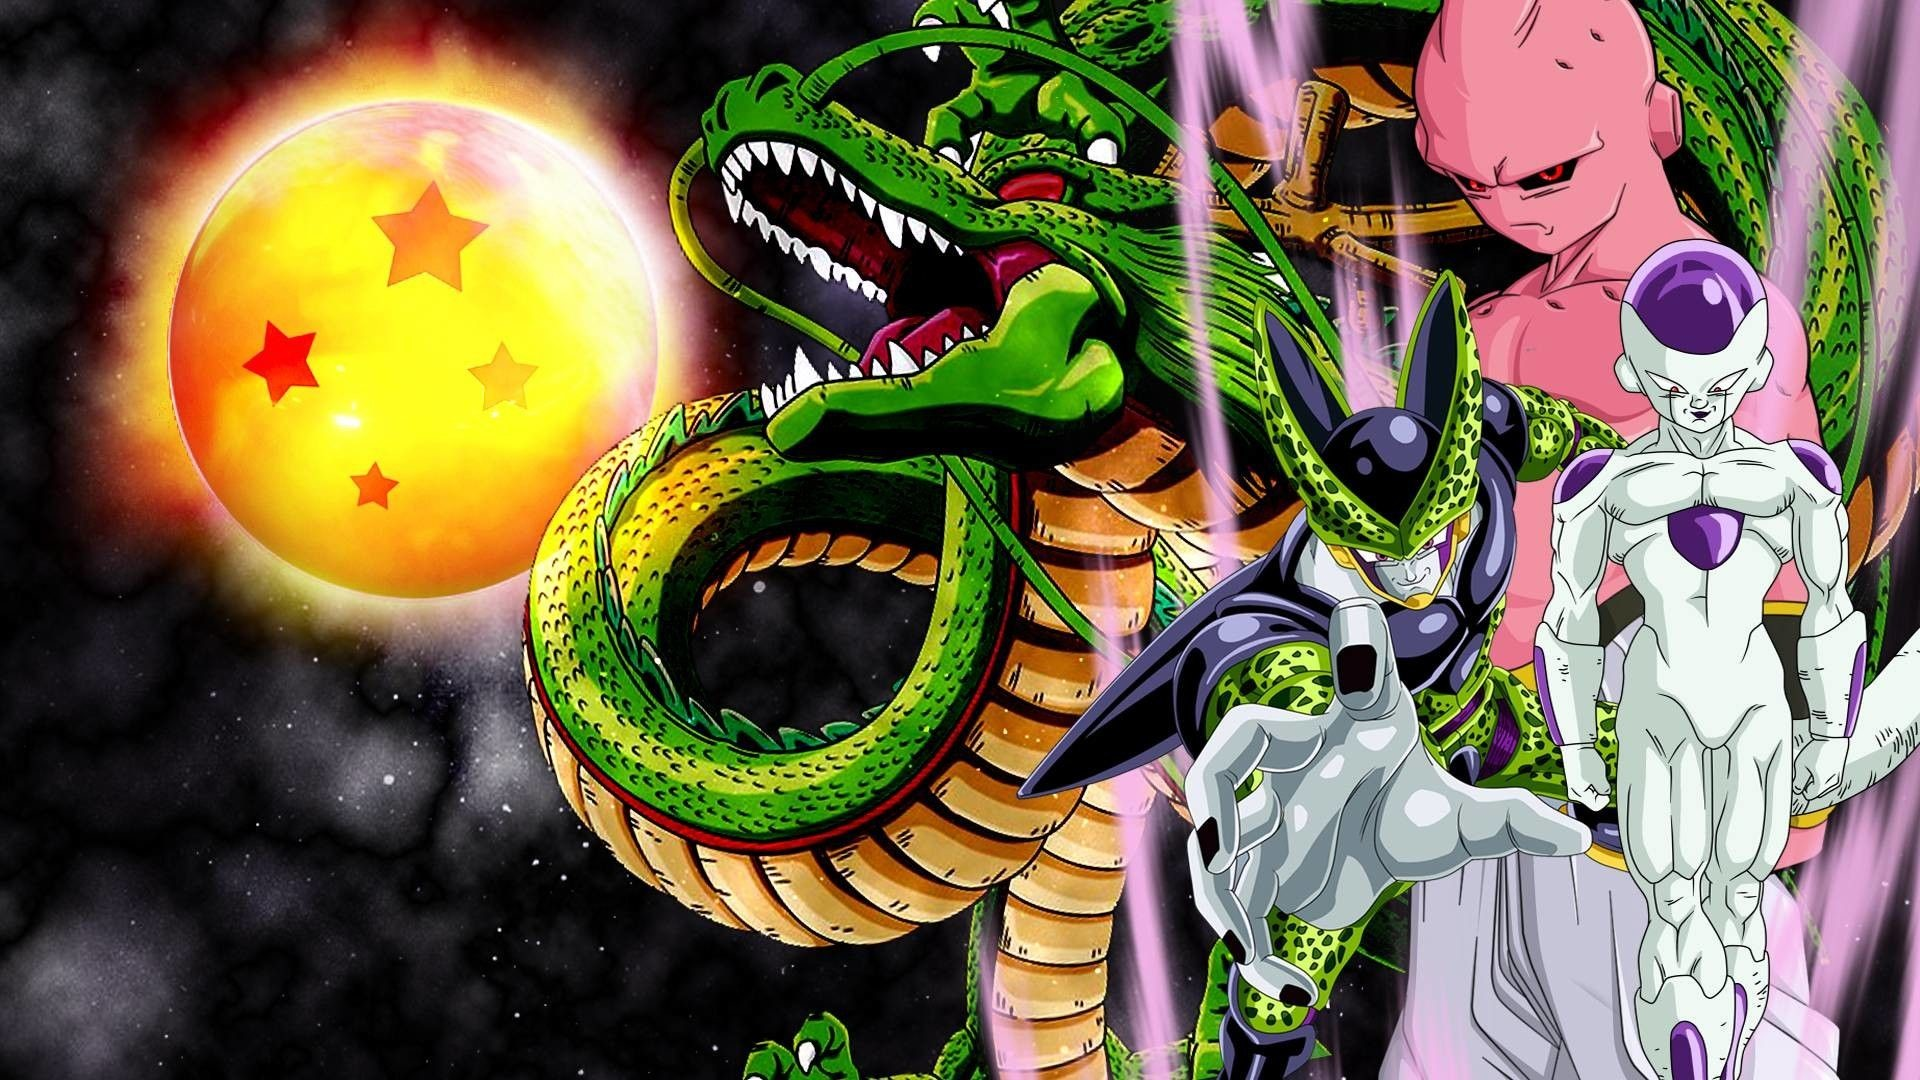 Res: 1920x1080,  Frieza, cell and buu wallpaper by vuLC4no on DeviantArt